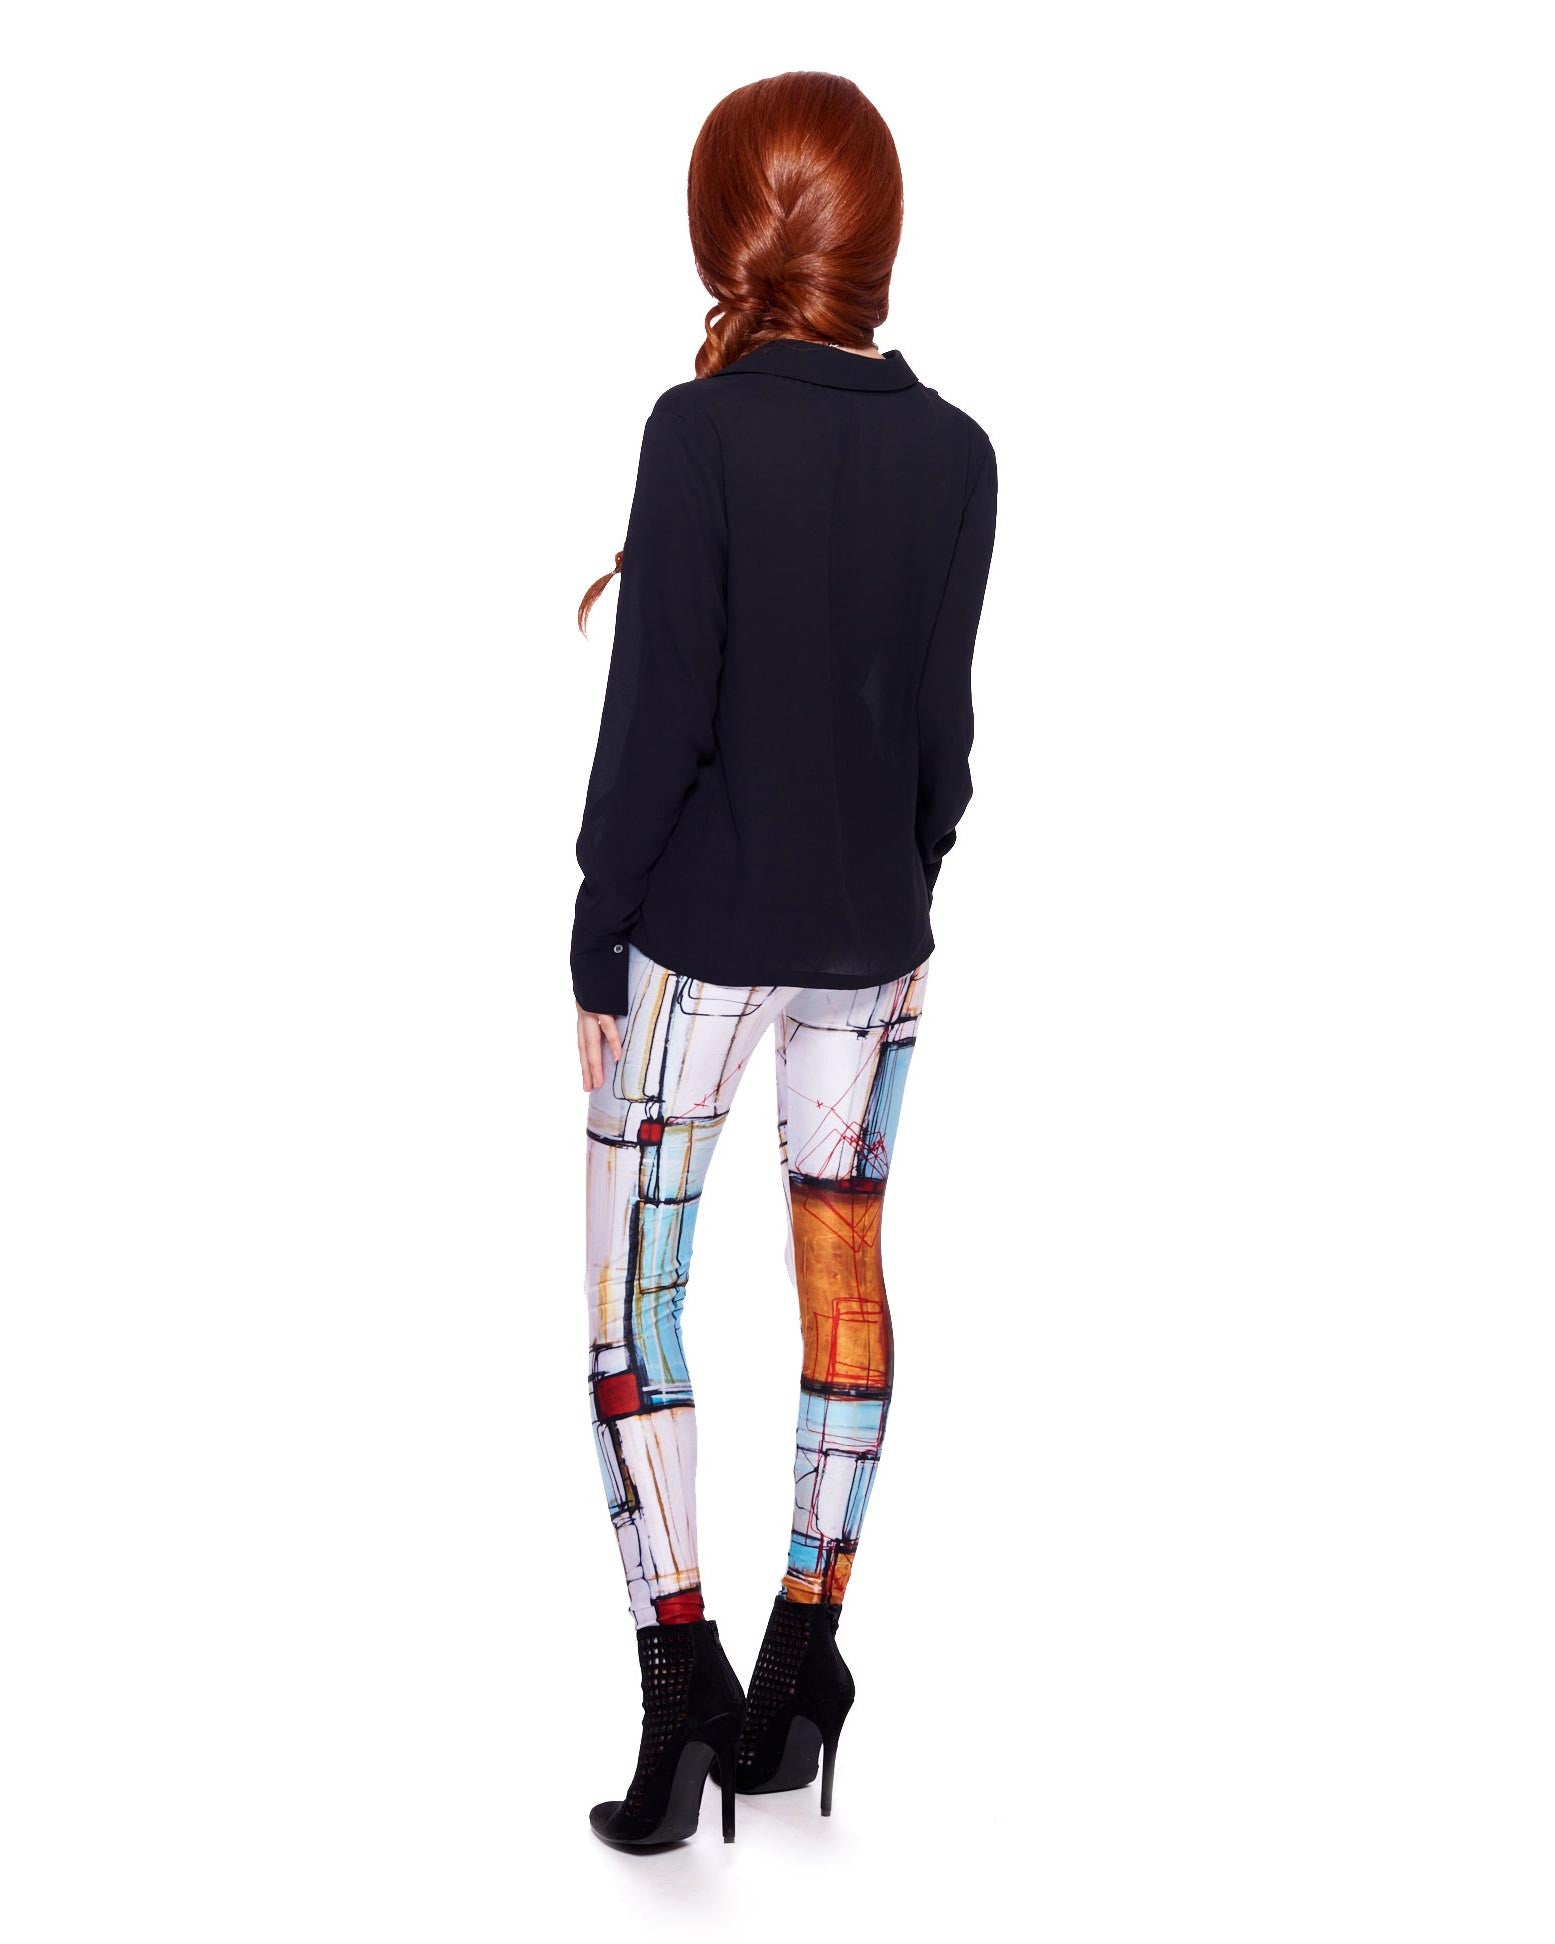 Shall We Dance Leggings